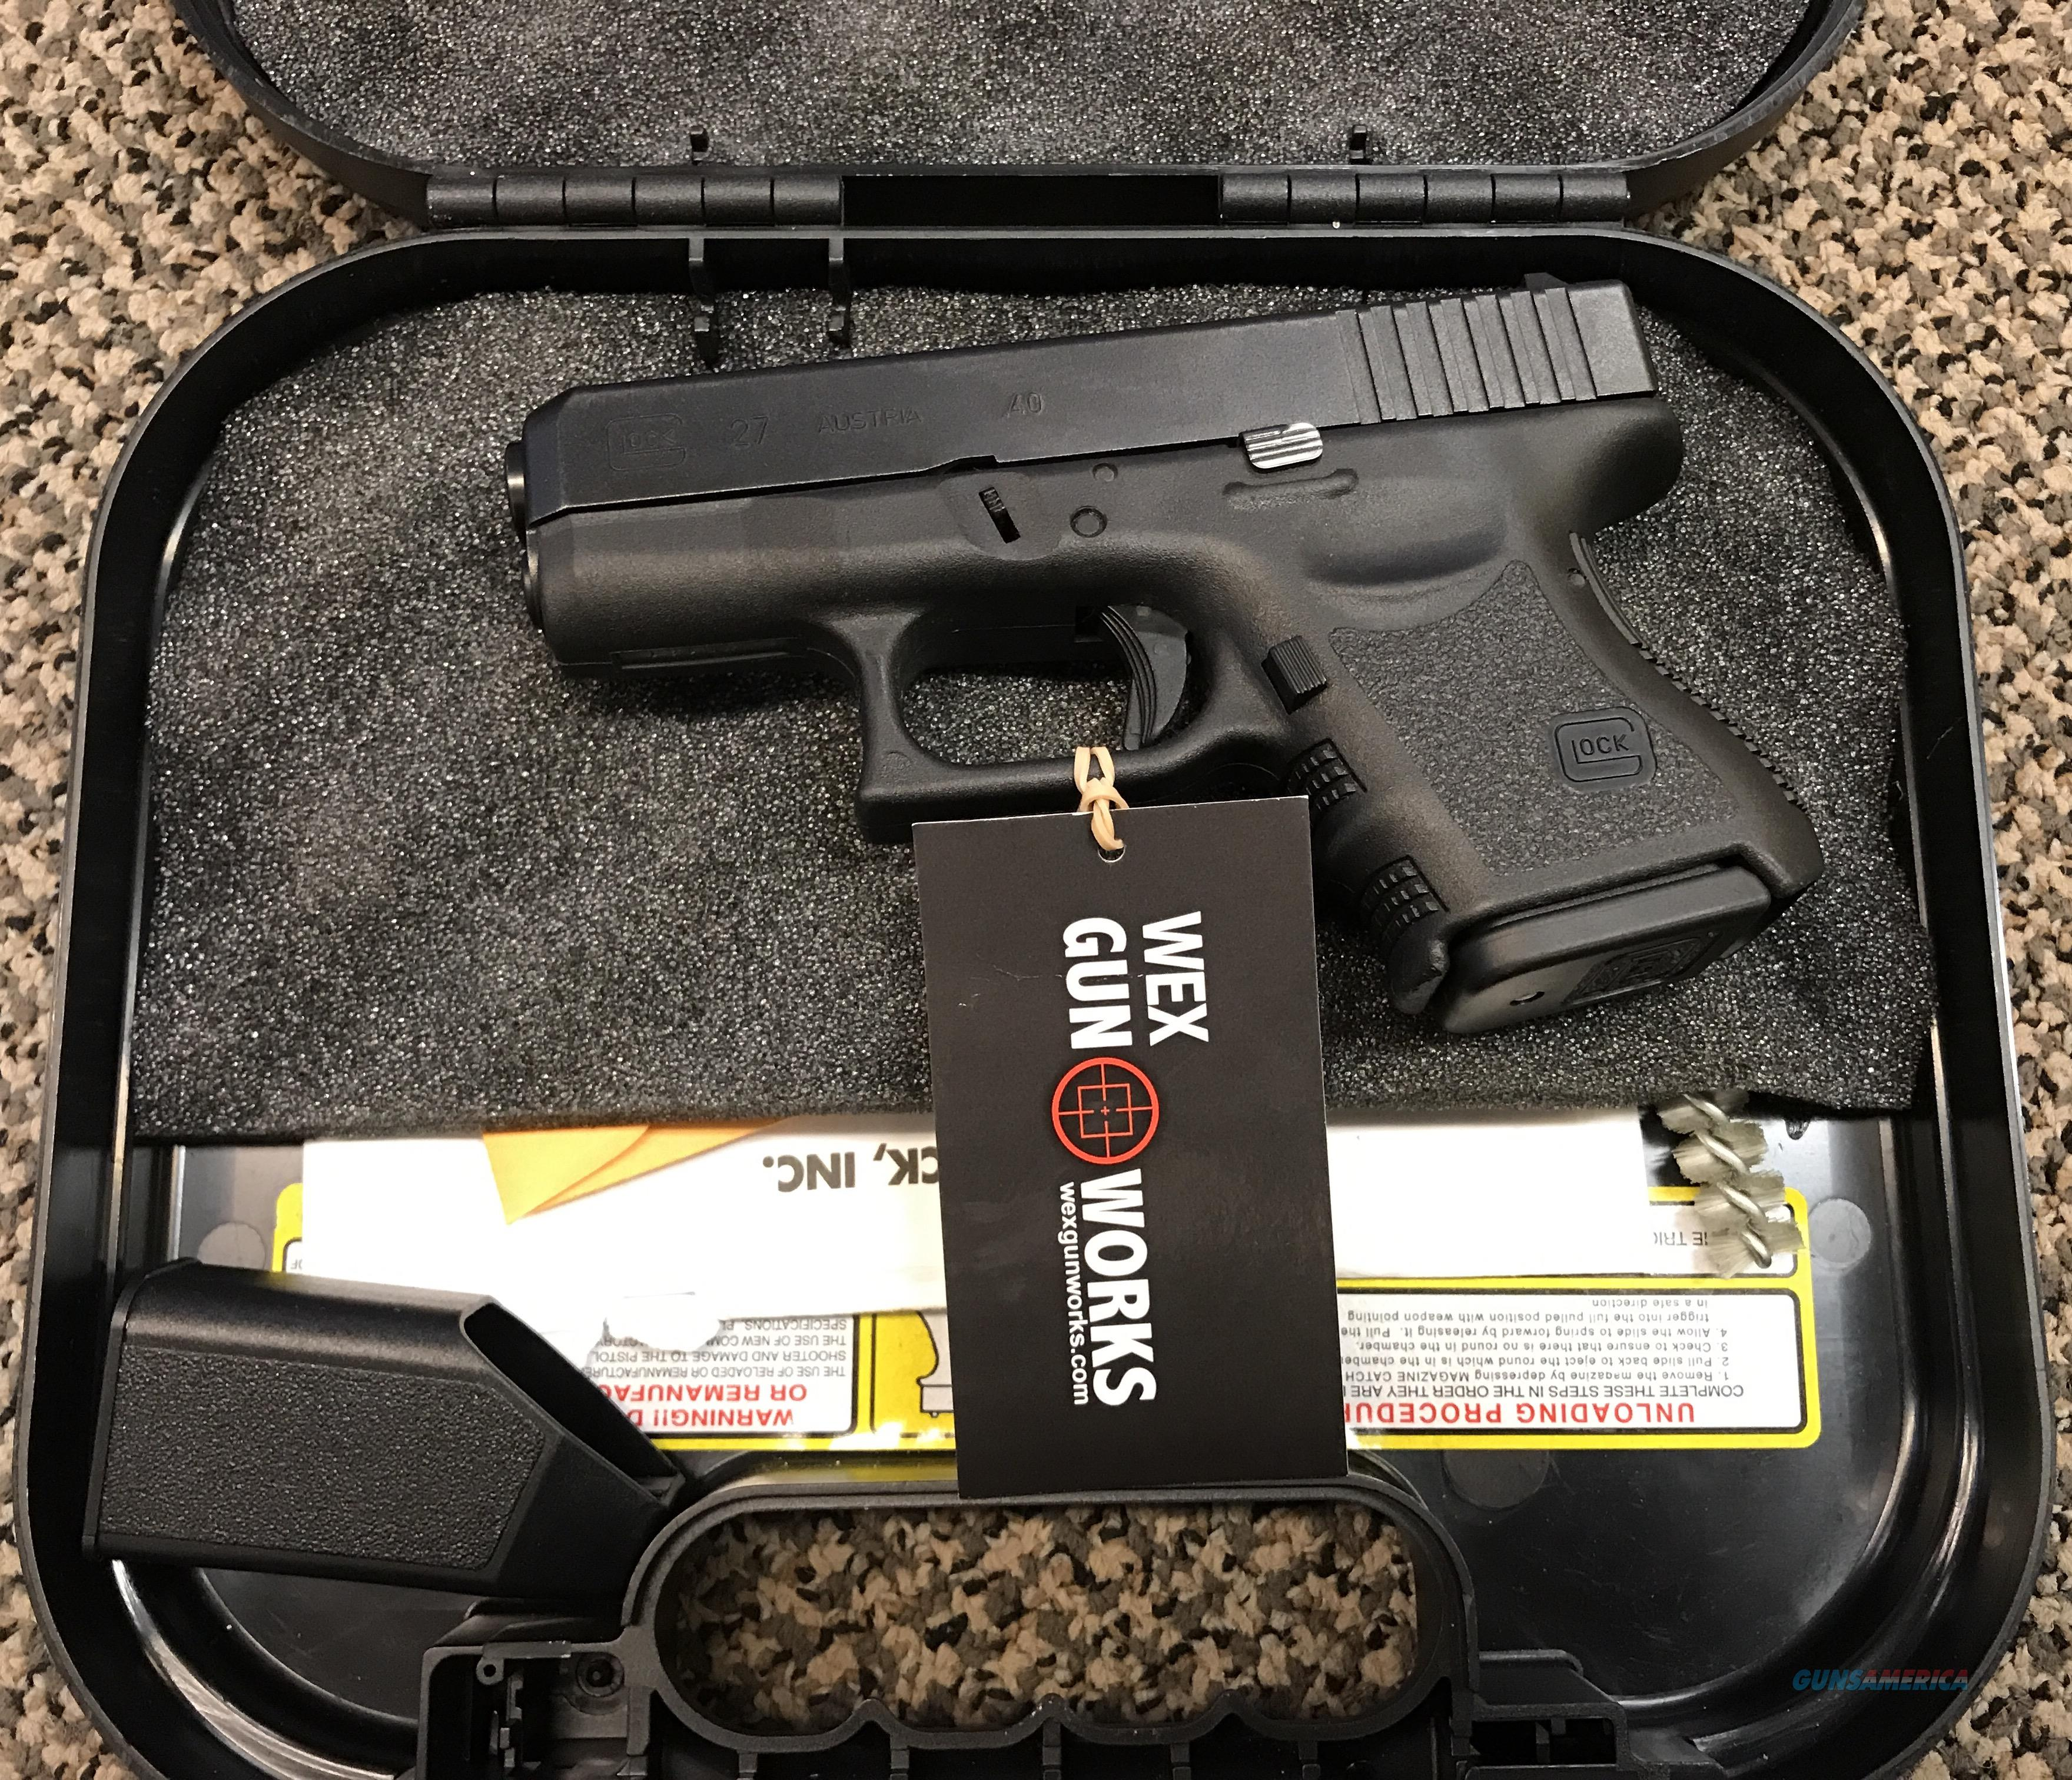 GLOCK 27 .40 S&W GEN 3 EXCELLENT CONDITION  Guns > Pistols > Glock Pistols > 26/27